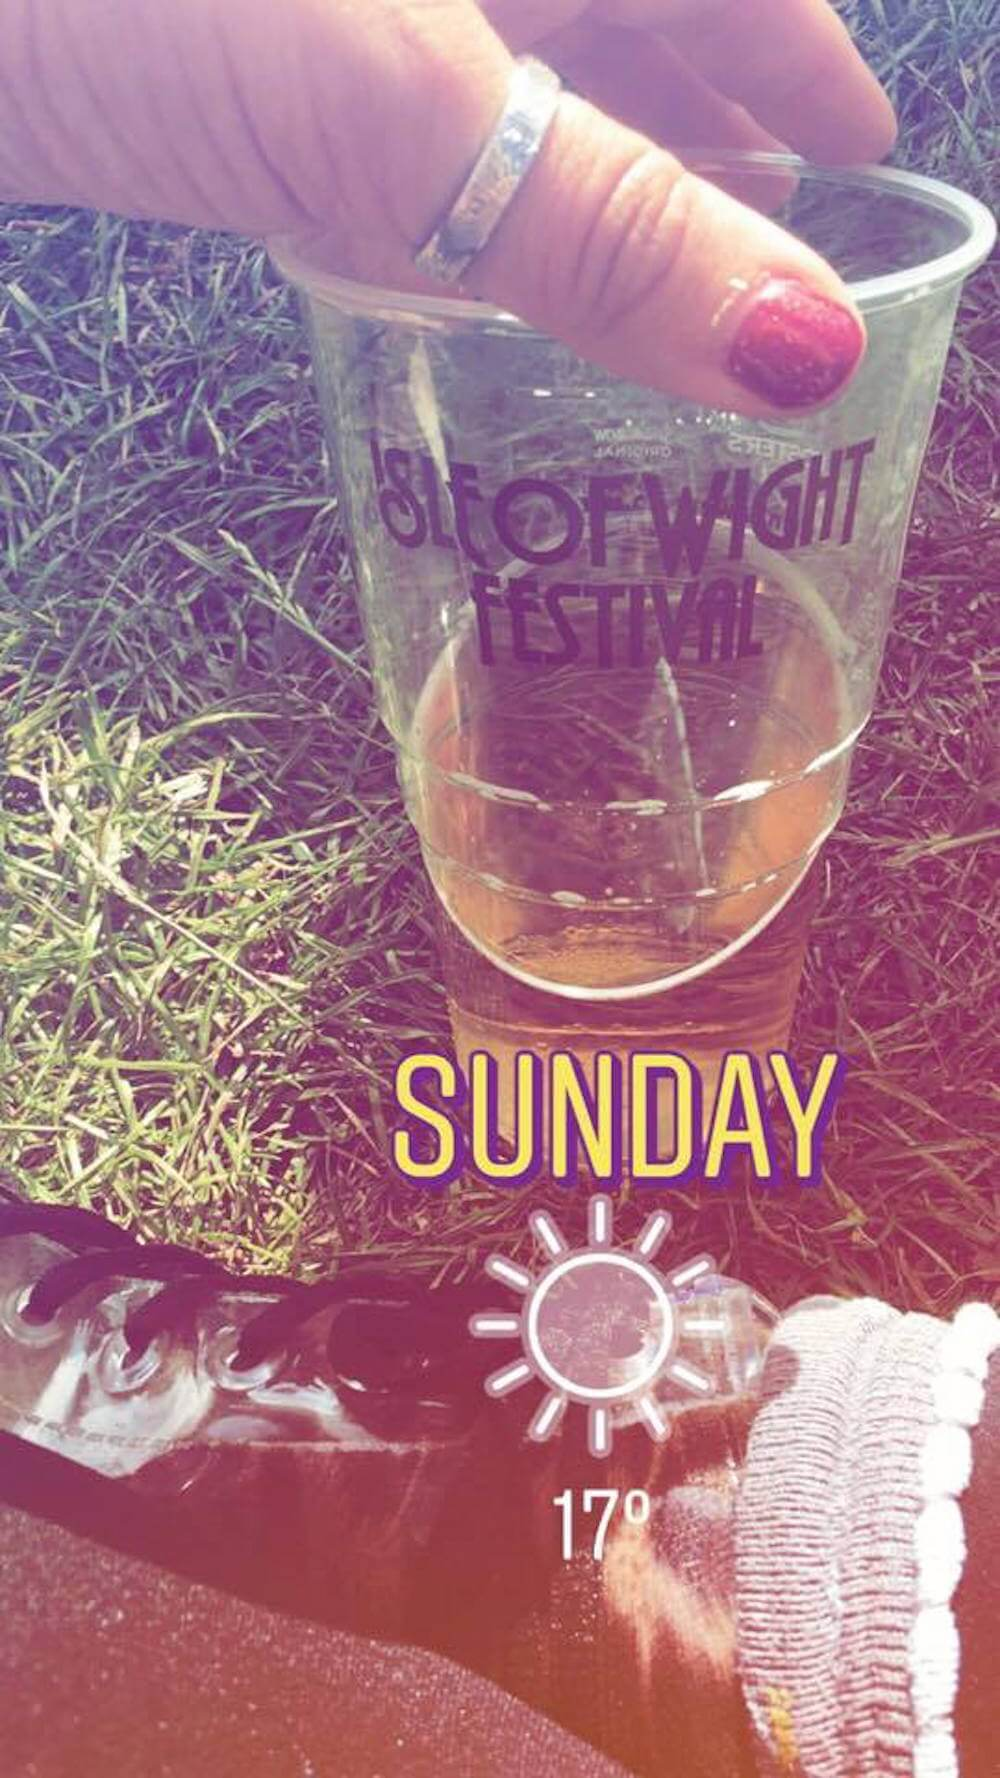 Isle of Wight Festival Review